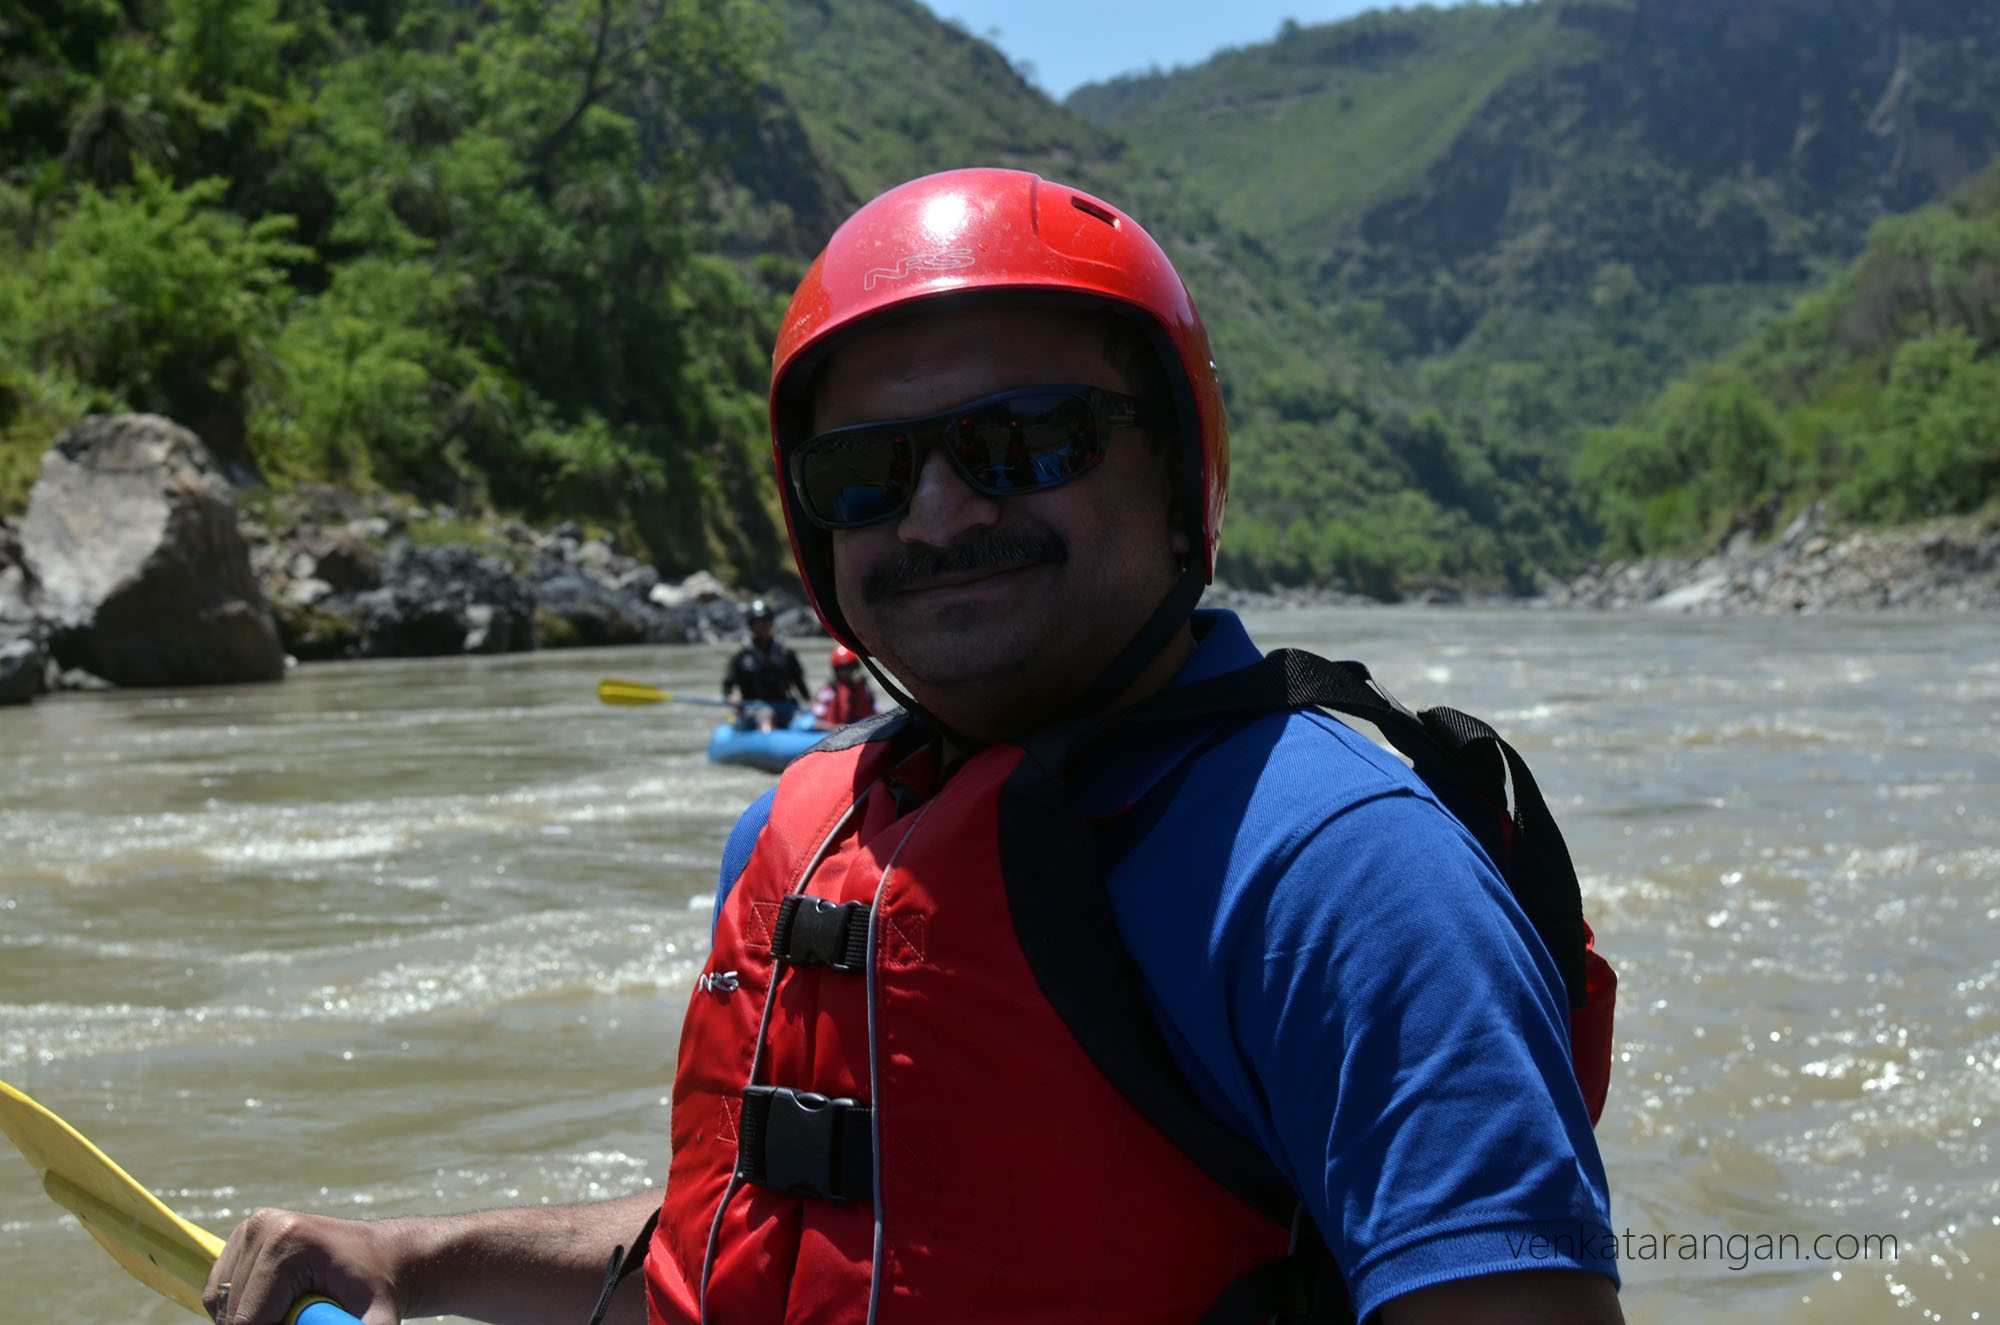 Venkatarangan paddling on a banana boat - fully strapped with safety gears